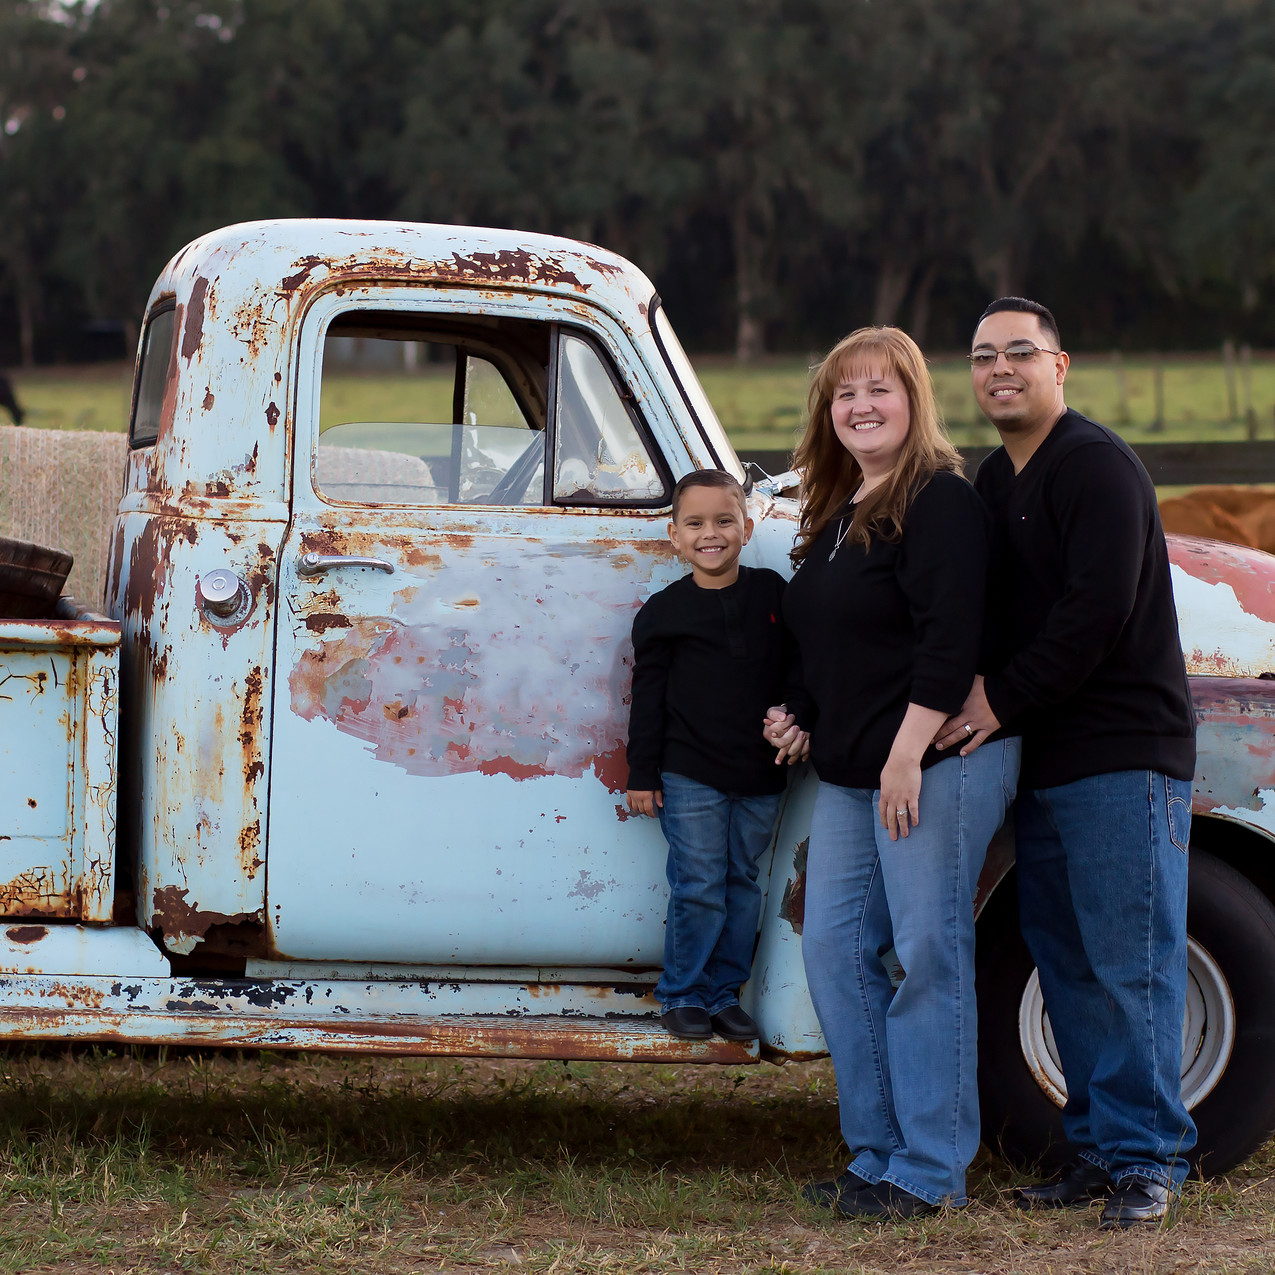 Tampa Family Photographer BEcky Truck sesion_Dec102016_0032 copy